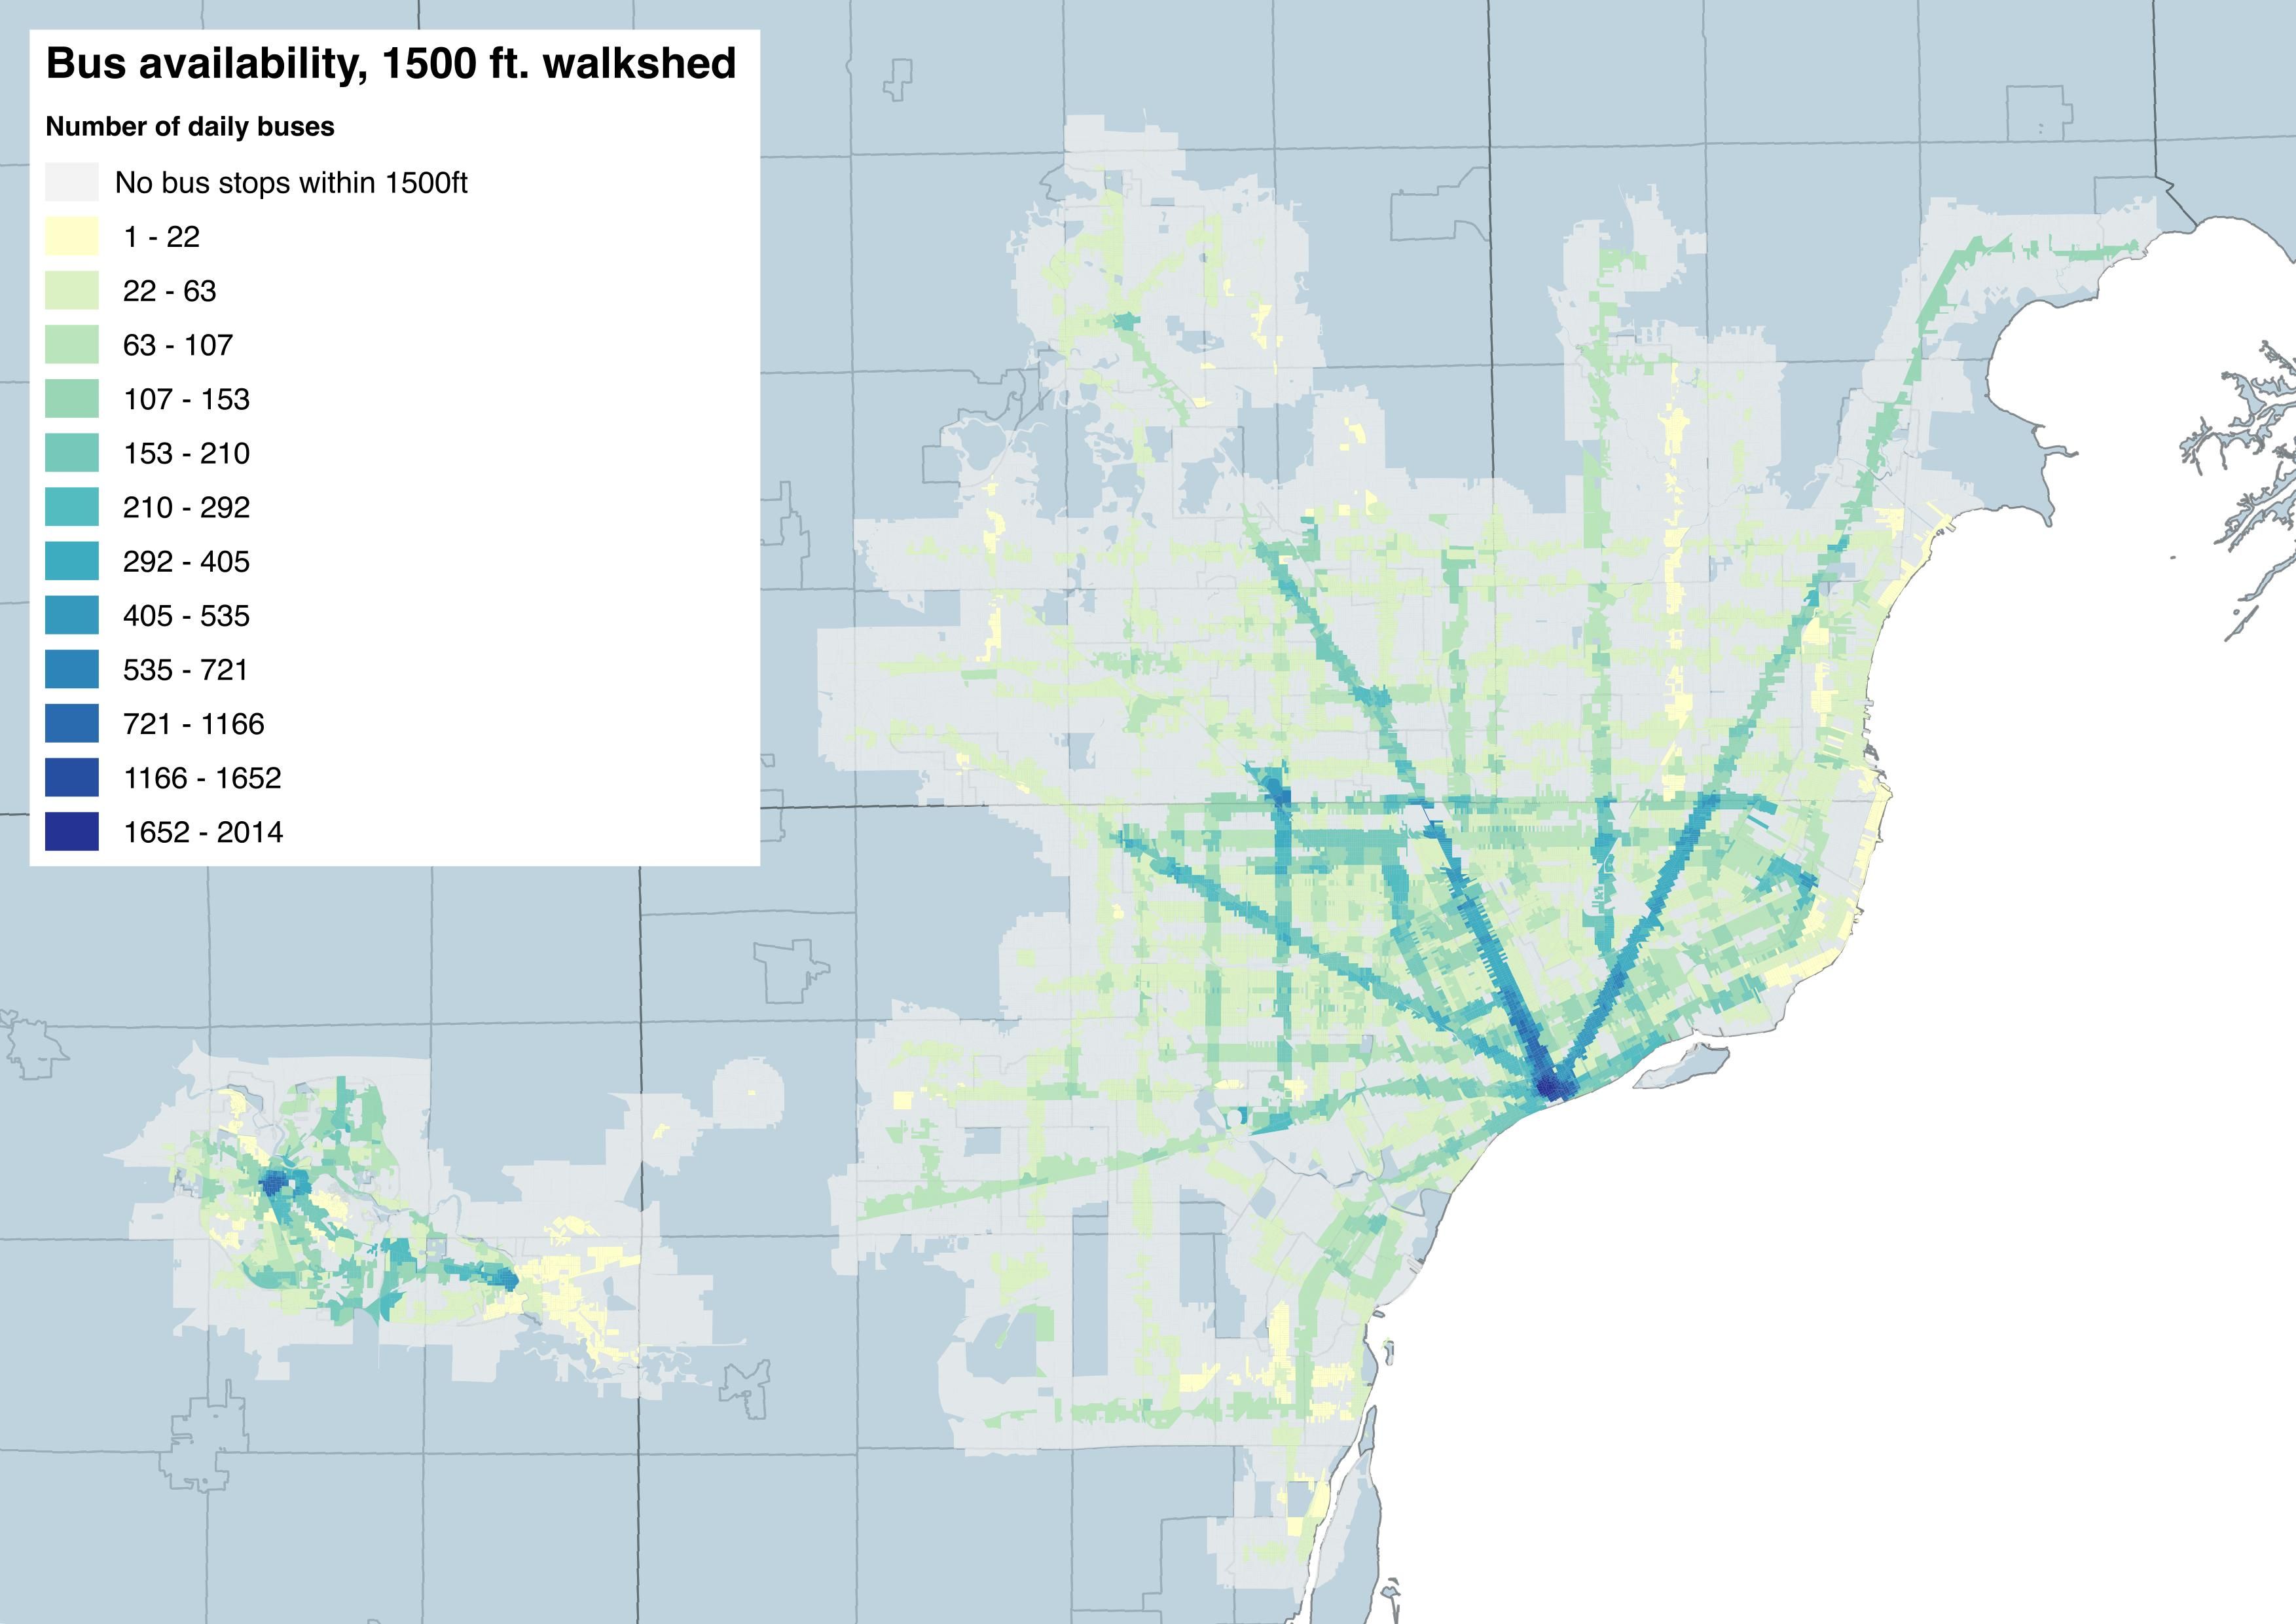 Map  Detroit Bus Availability and Walkability   DETROITography det bus accessibility